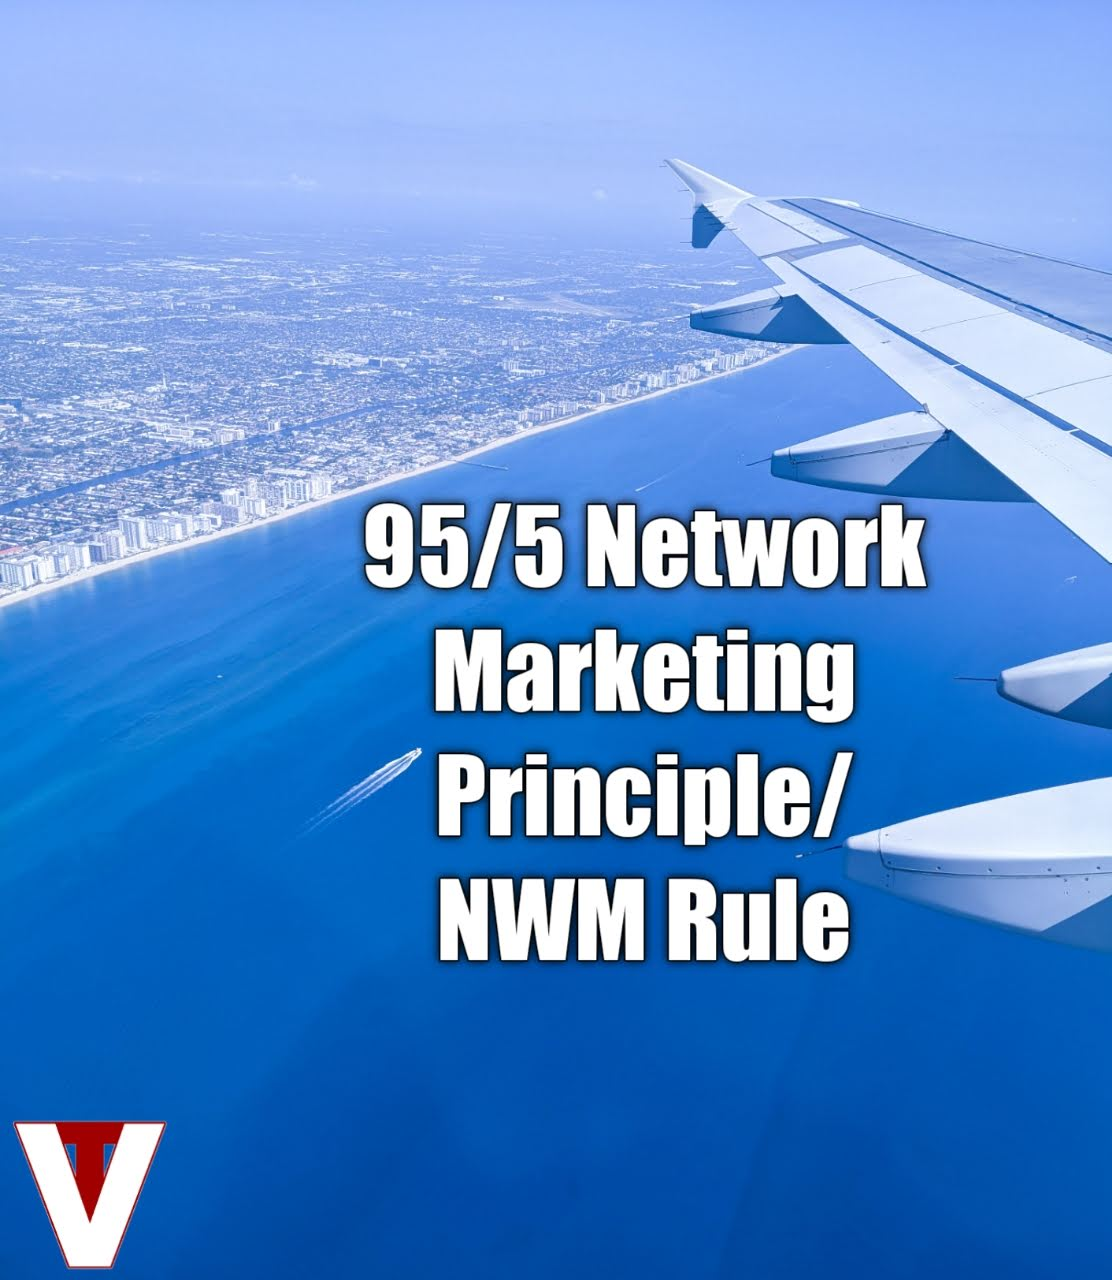 95/5 network marketing principle and rule nwm